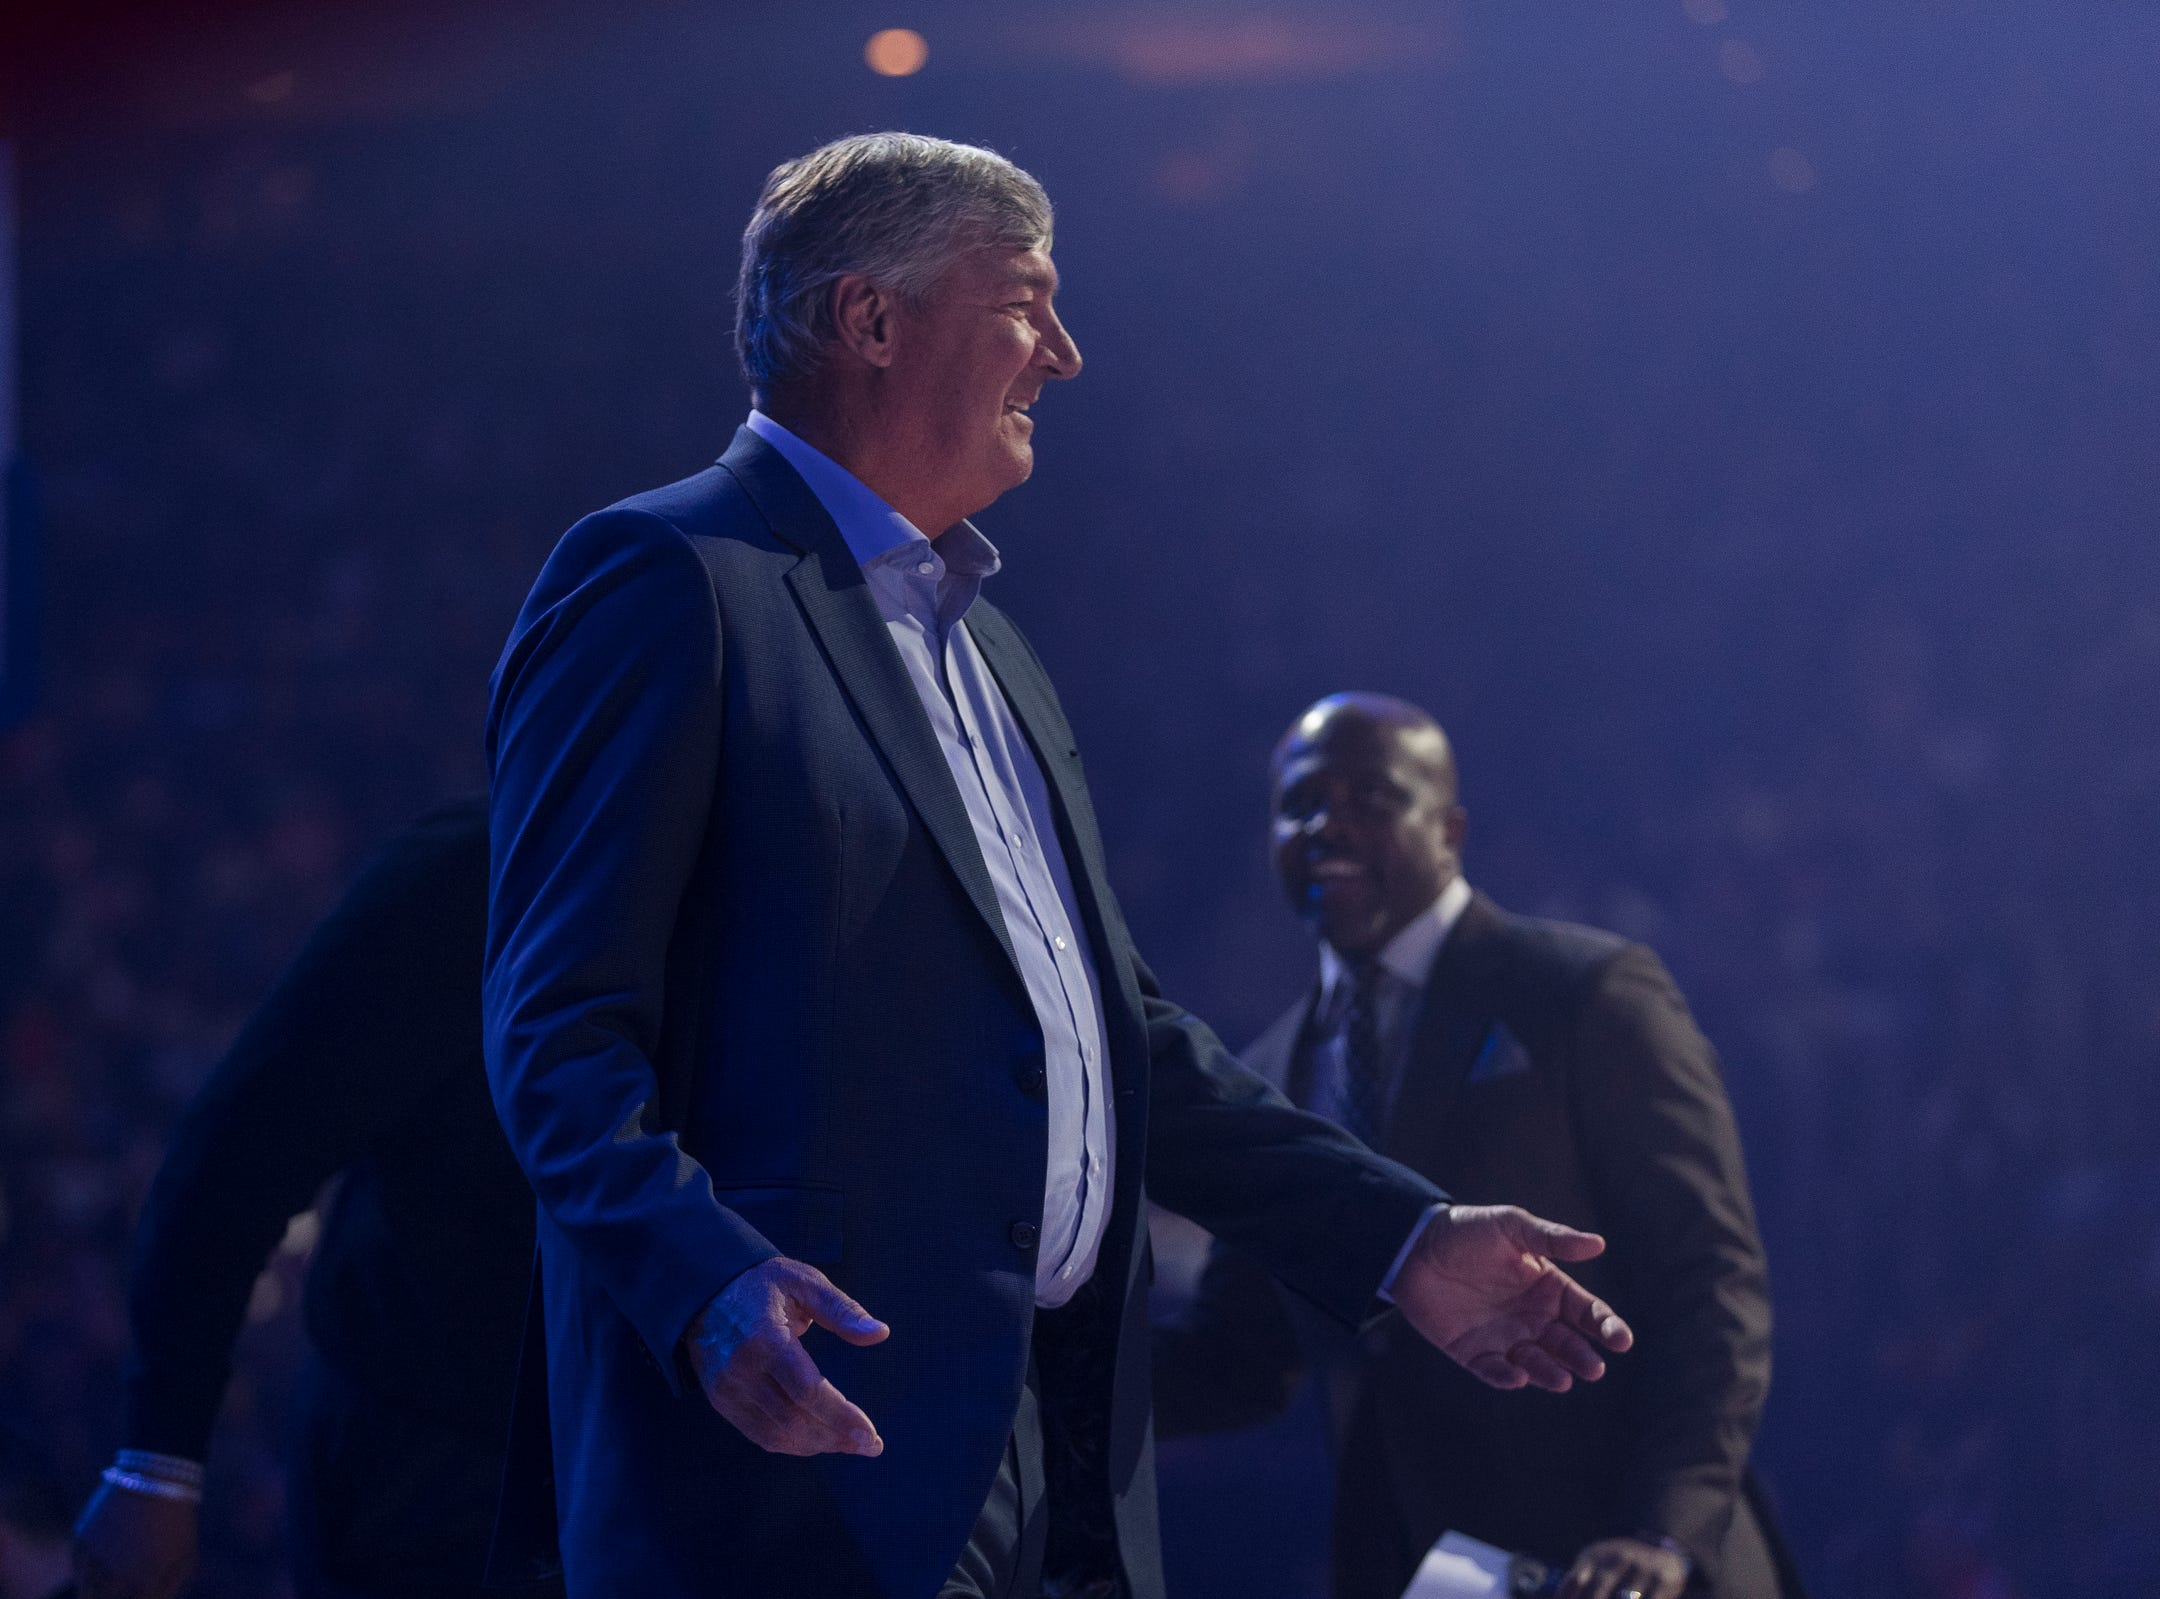 Bill Laimbeer is being introduced during the Pistons' ceremony for the 30th anniversary of the 1989-90 back-to-back championships during the Pistons' 99-90 win over the Trail Blazers on Saturday, March 30, 2019, at Little Caesars Arena.